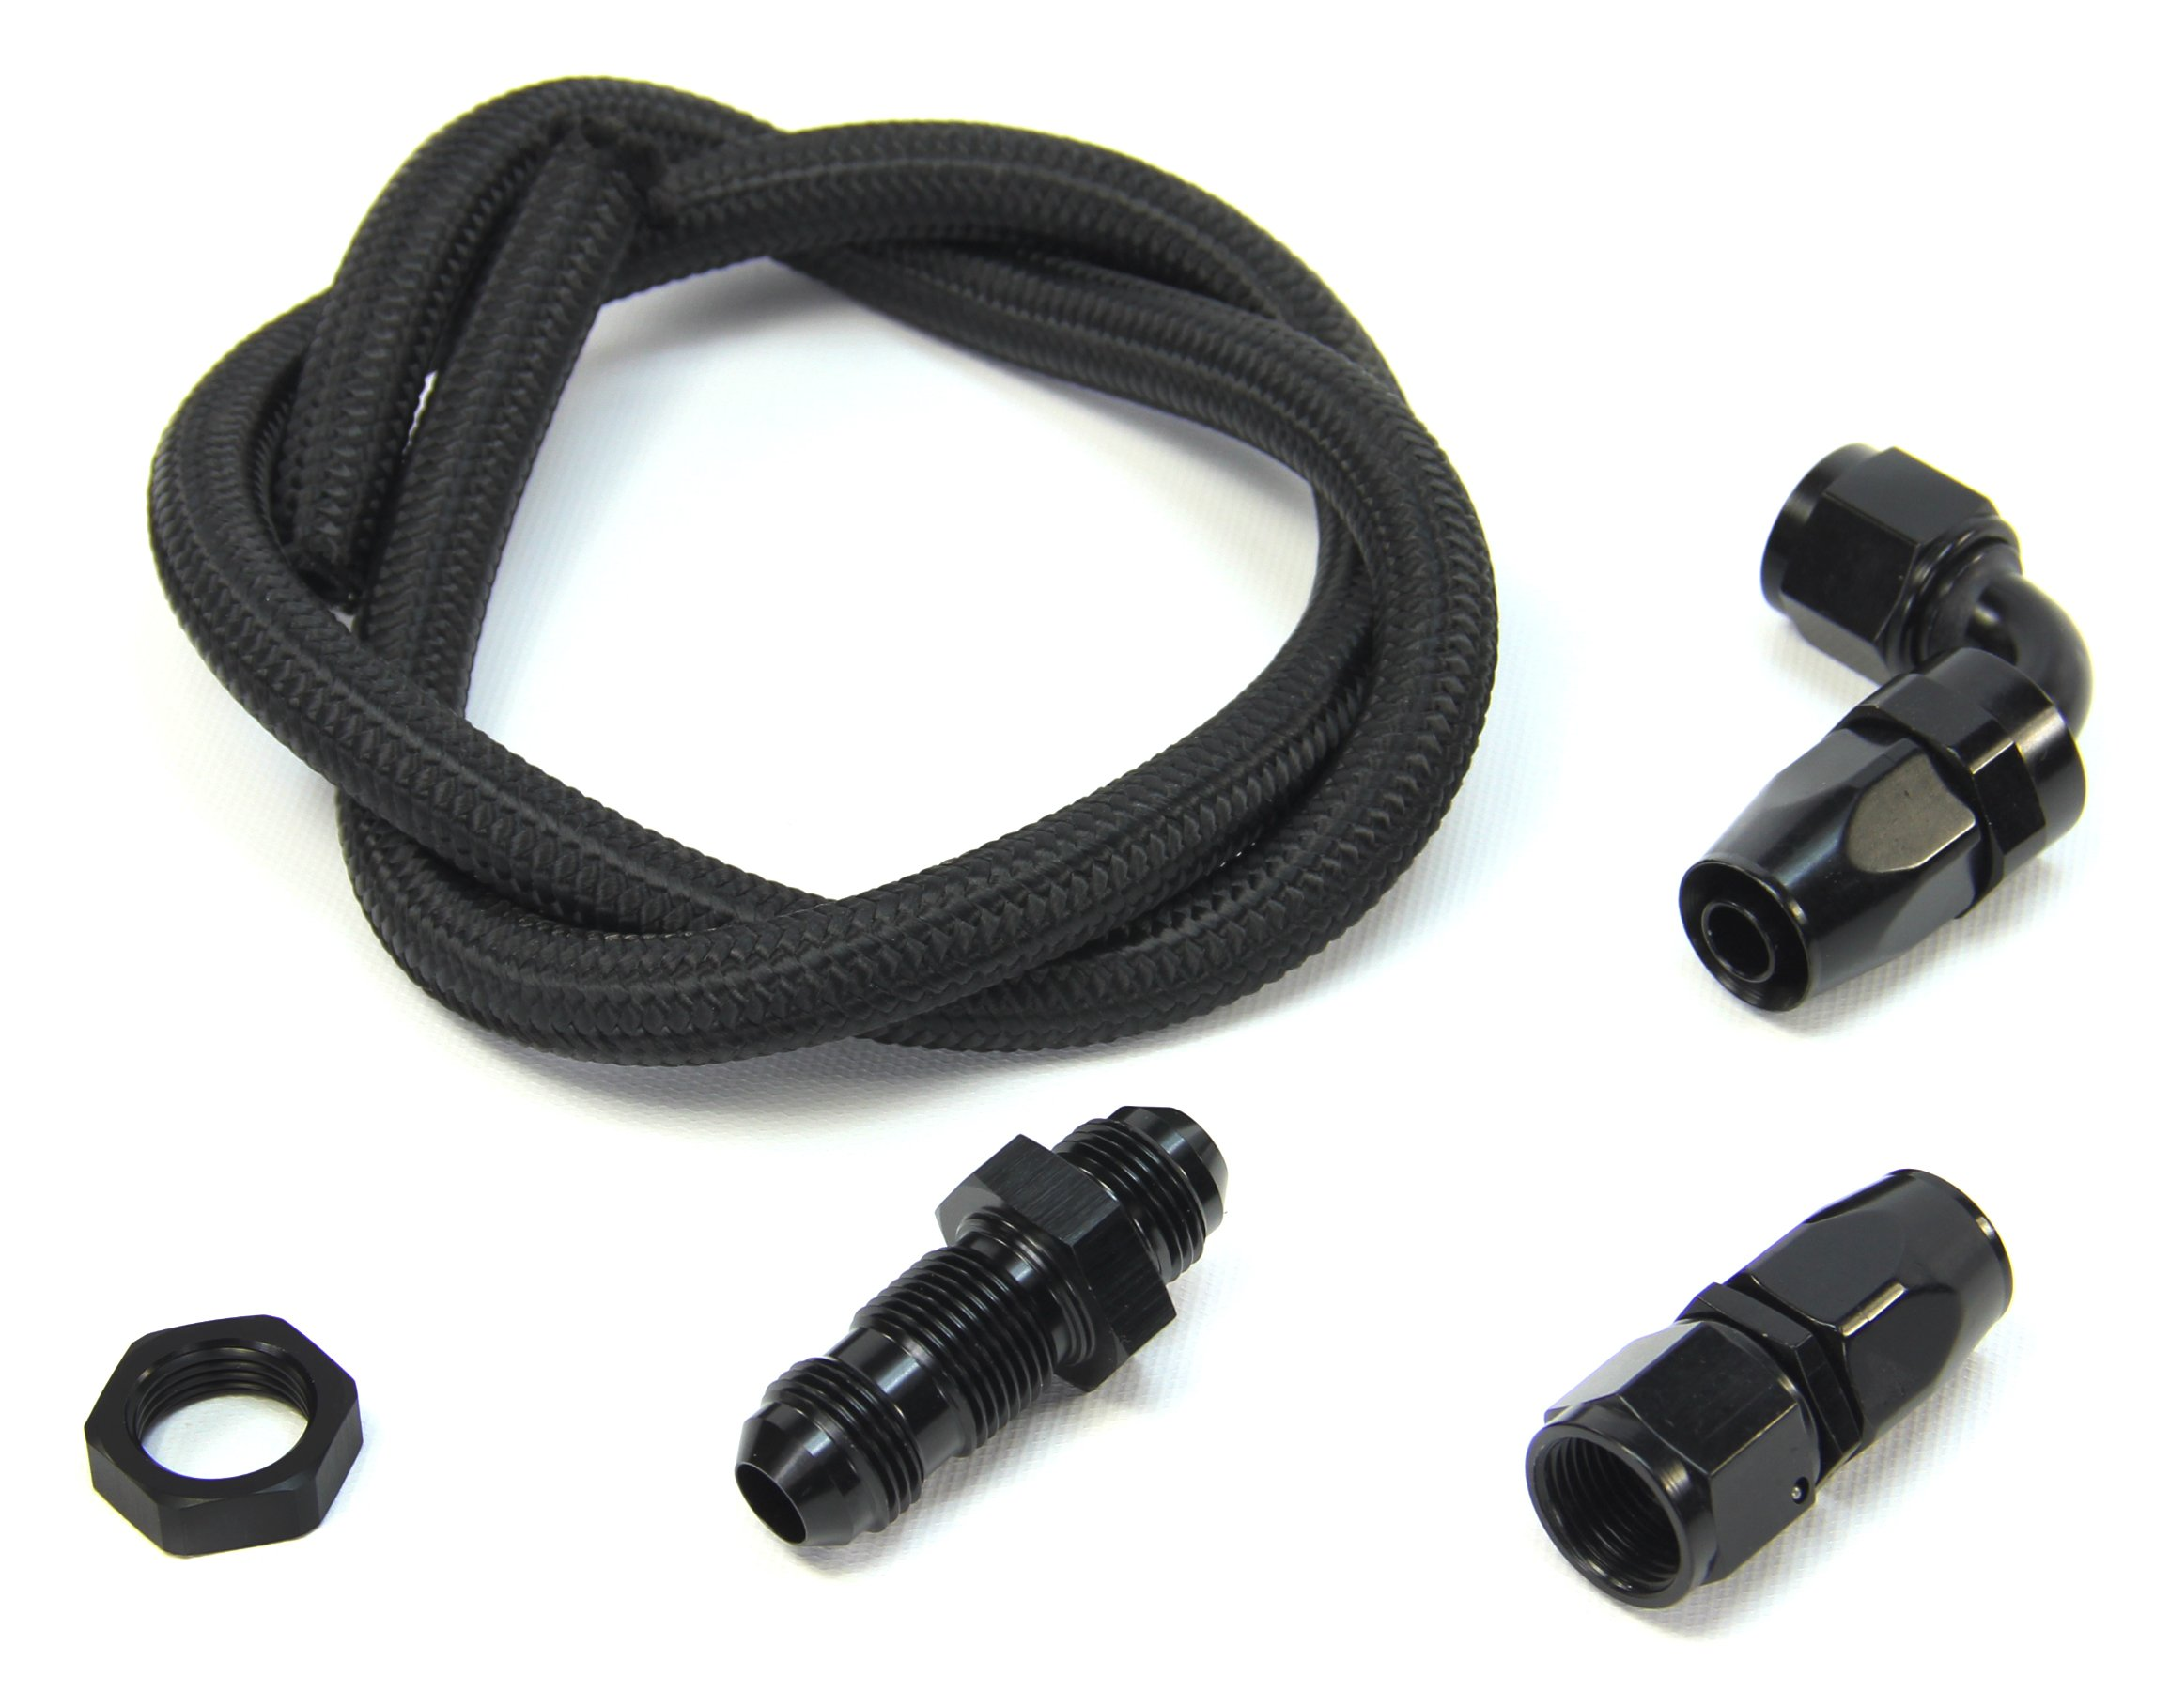 90 Degree Universal Blow Down Kit With Straight Bulk Head (Black Fittings)